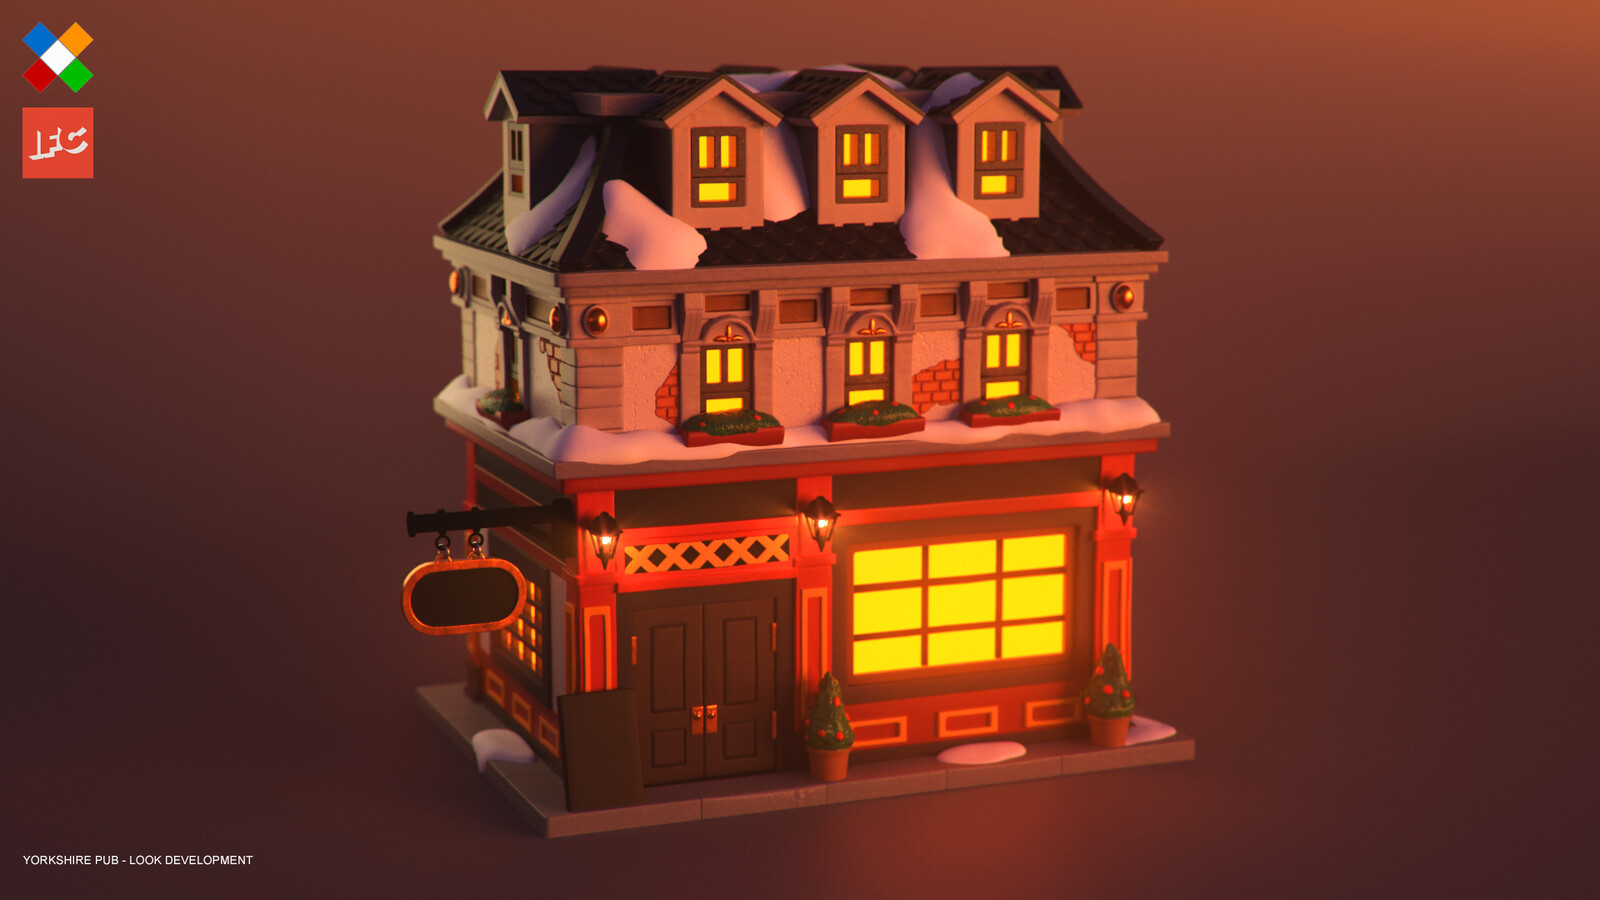 Look Development done for the Yorkshire Pub model